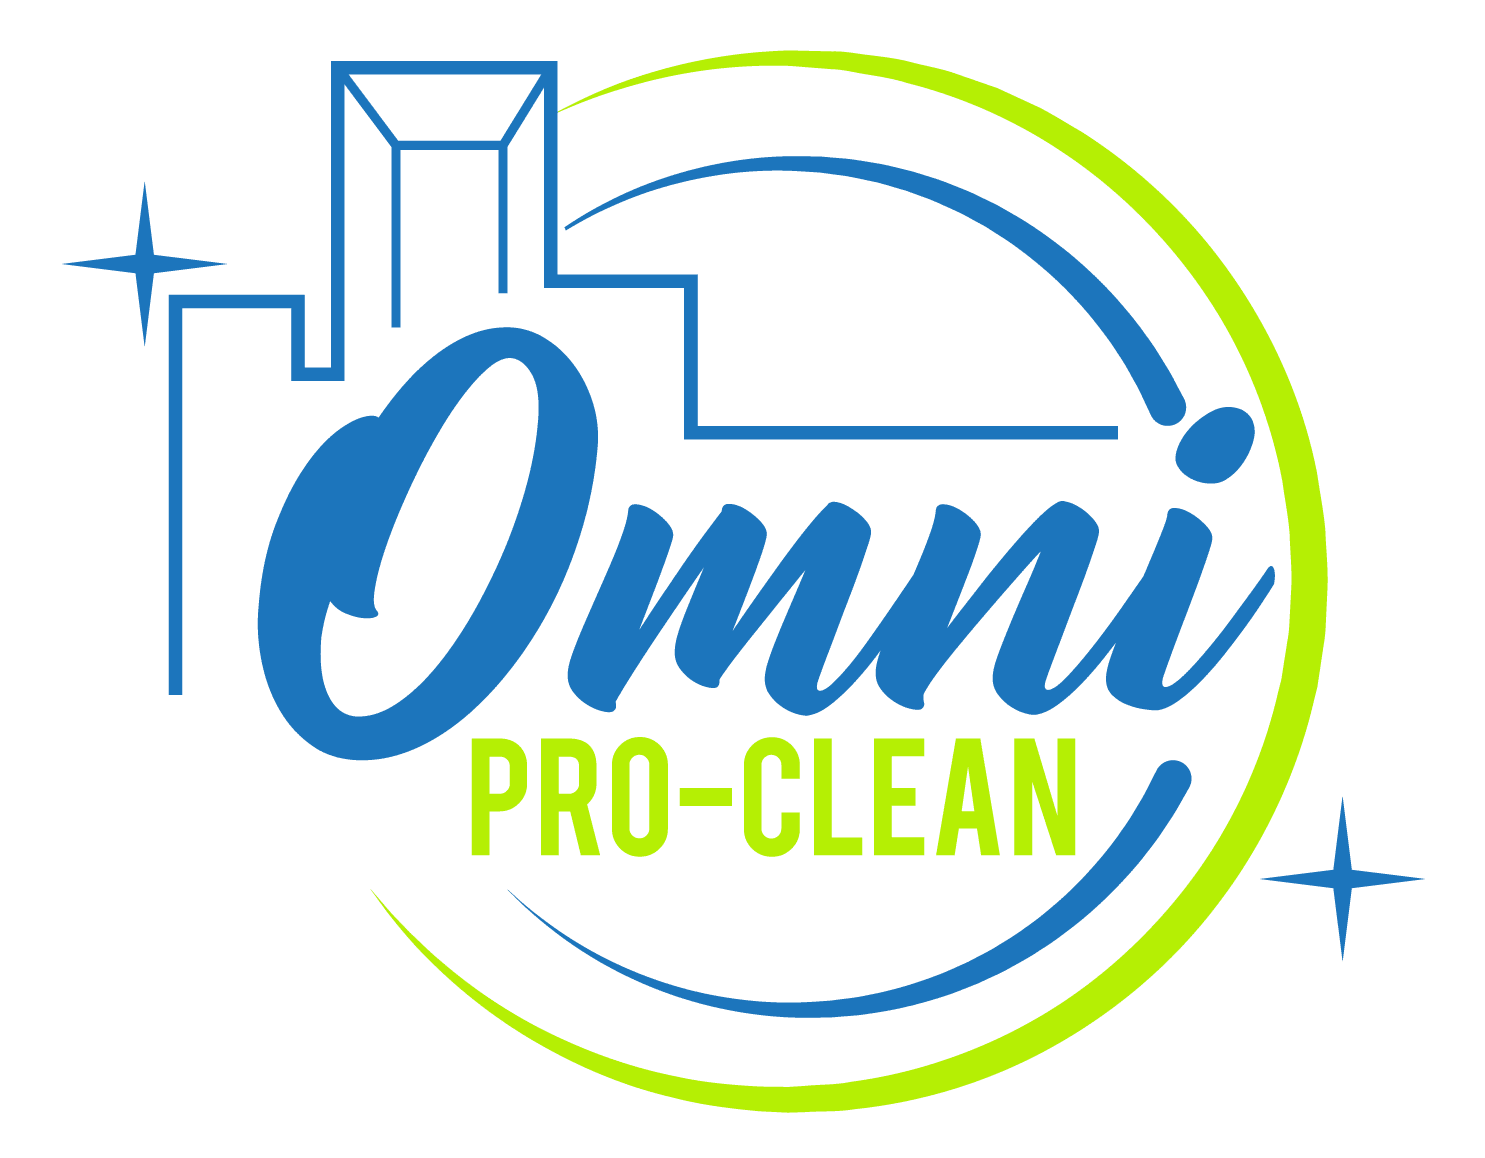 Omni Pro-Clean Lexington KY - Professional Cleaning Services Near Me